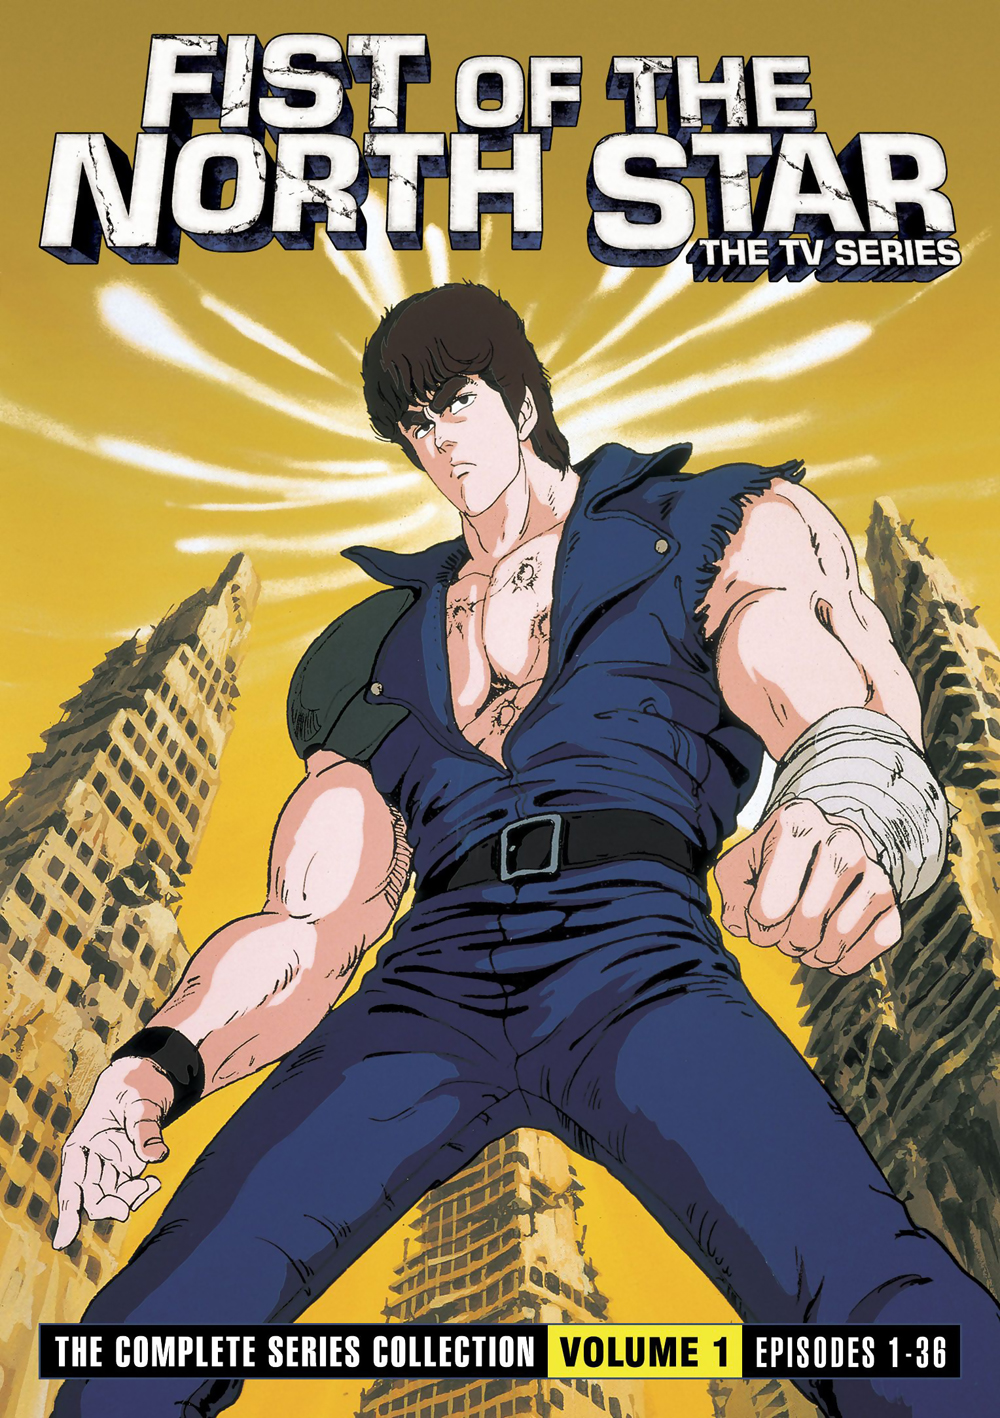 Fist of the North Star: The TV Series Collection 1 DVD 875707004121